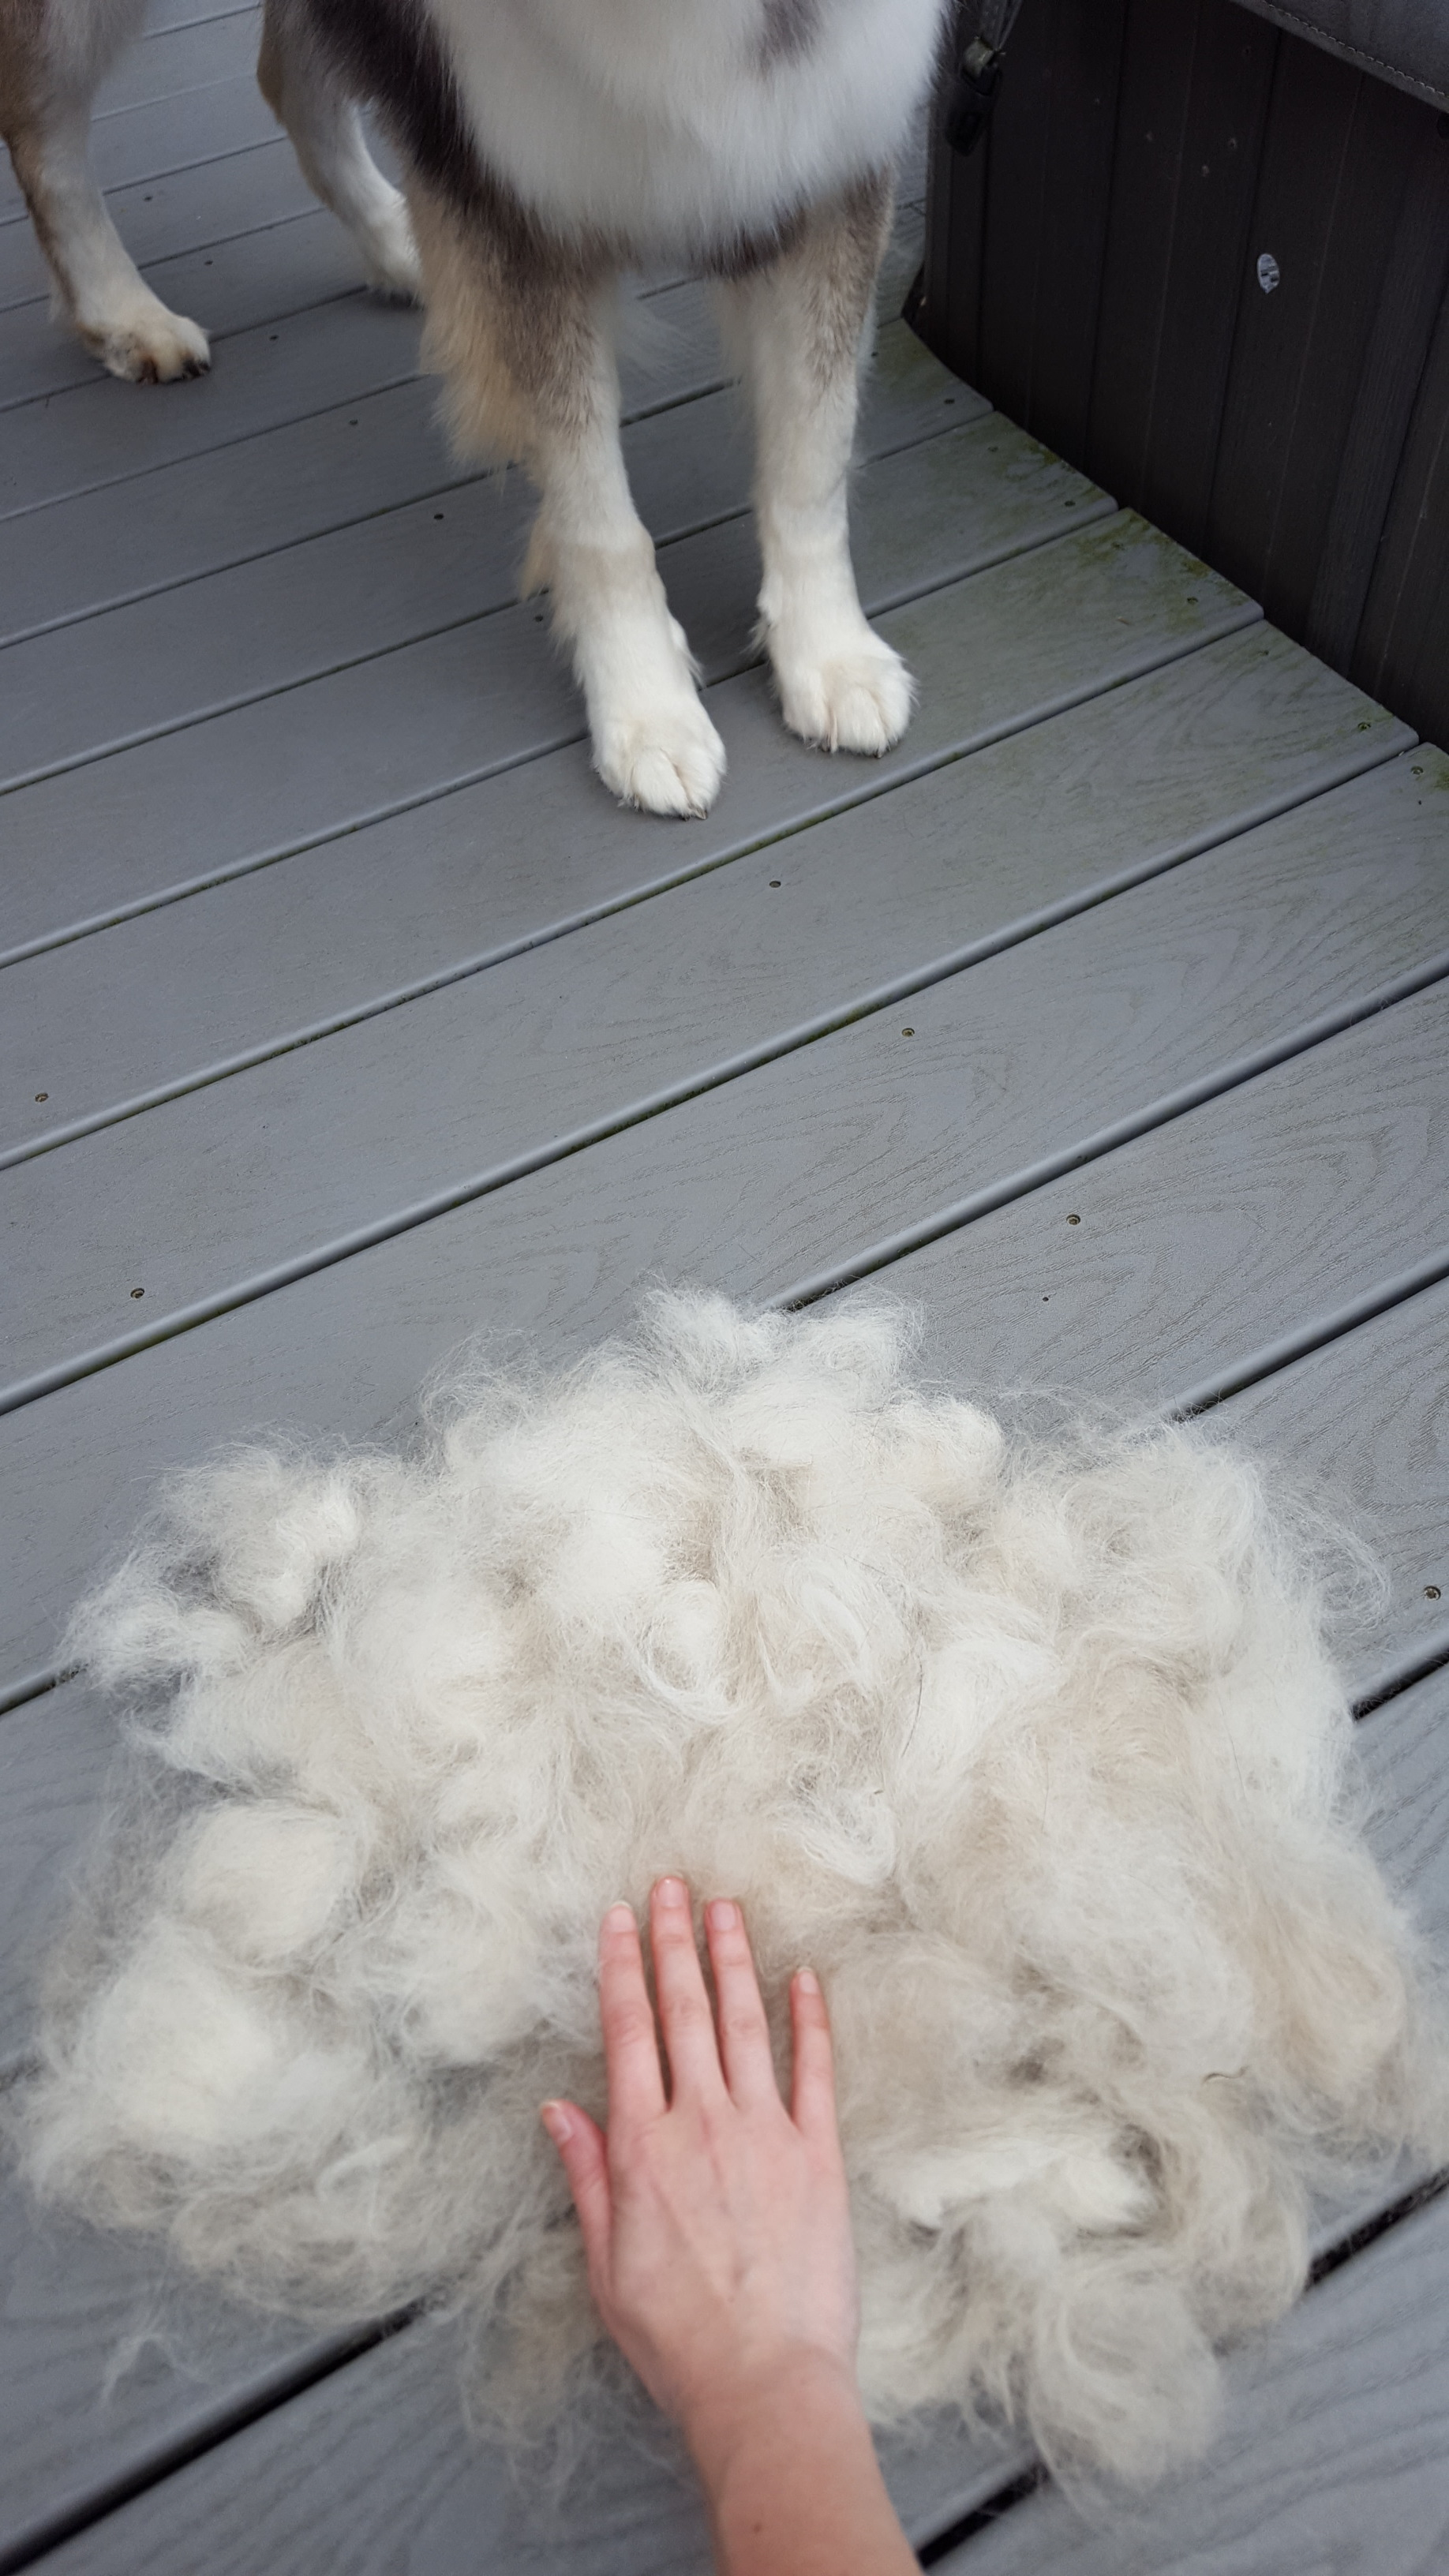 Hair shed after just 15 minutes of brushing